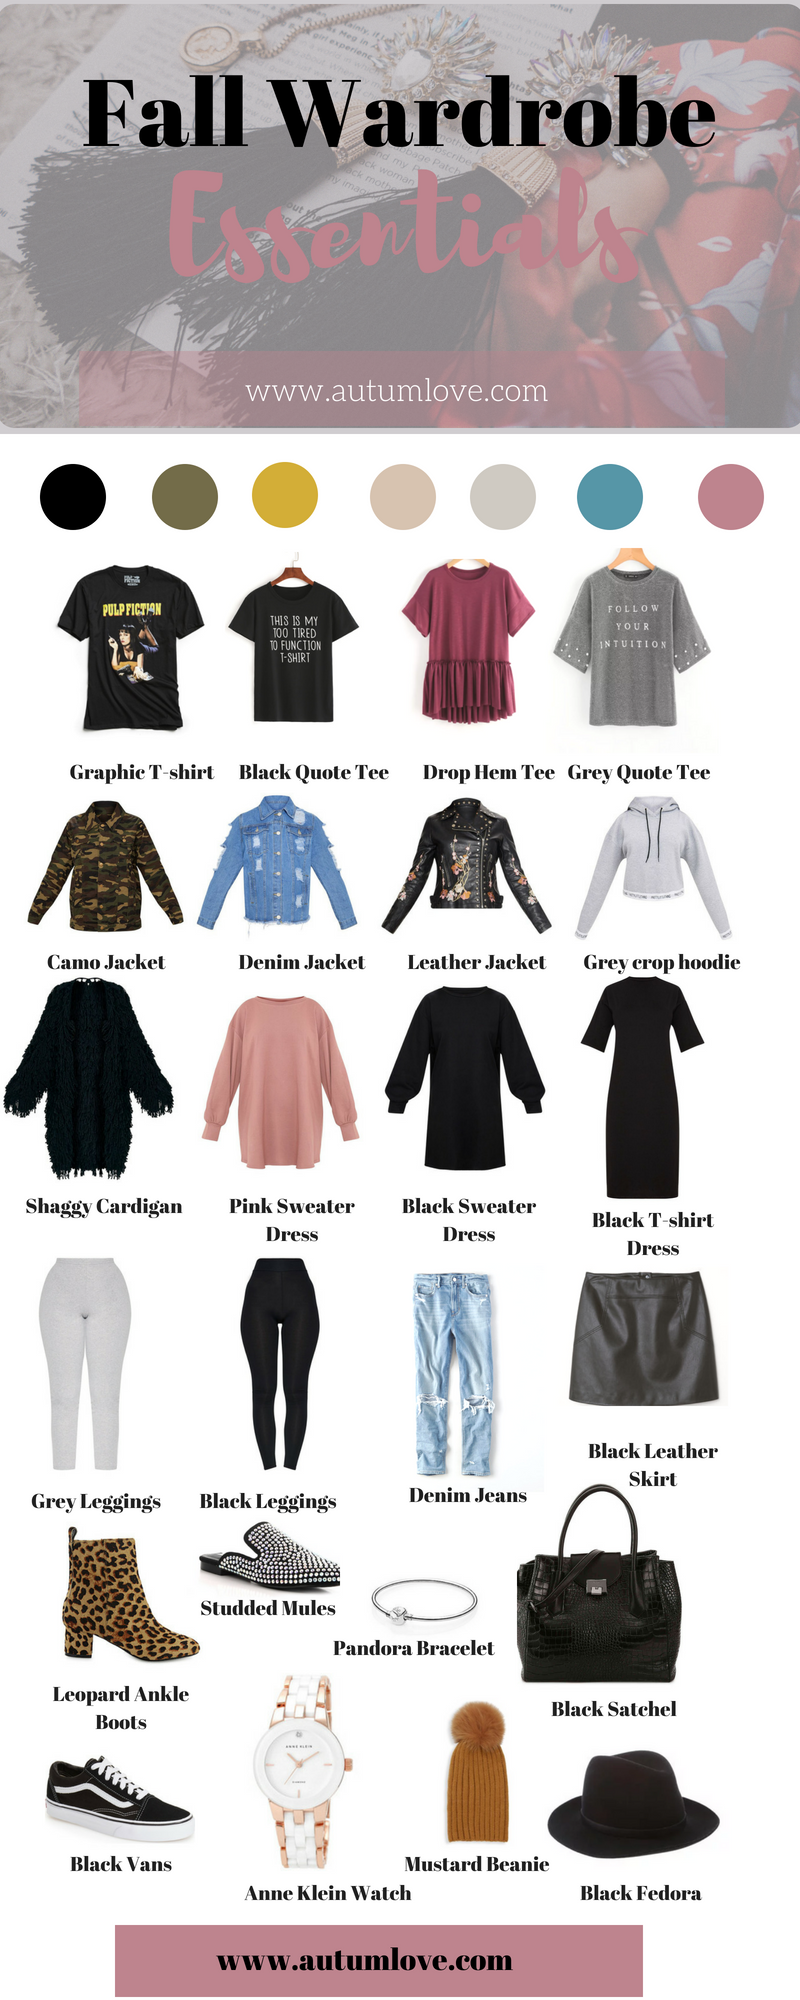 Fall Wardrobe Essentials, fall color palette, wardrobe color palette, fall capsule wardrobe, capsule wardrobe challenge, capsule wardrobe